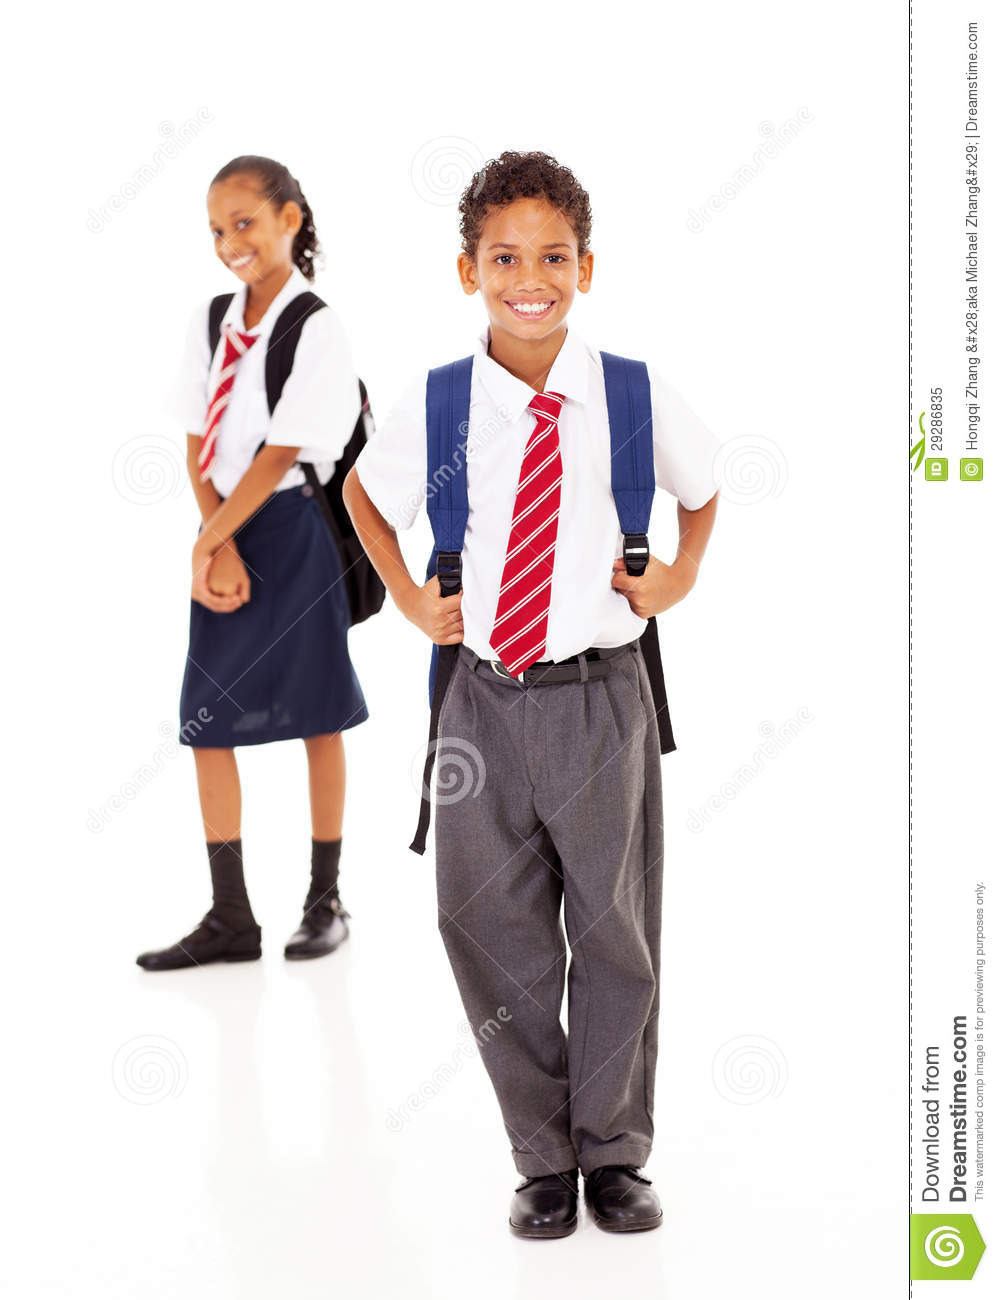 Primary School Students Stock Image Image Of Cute American 29286835